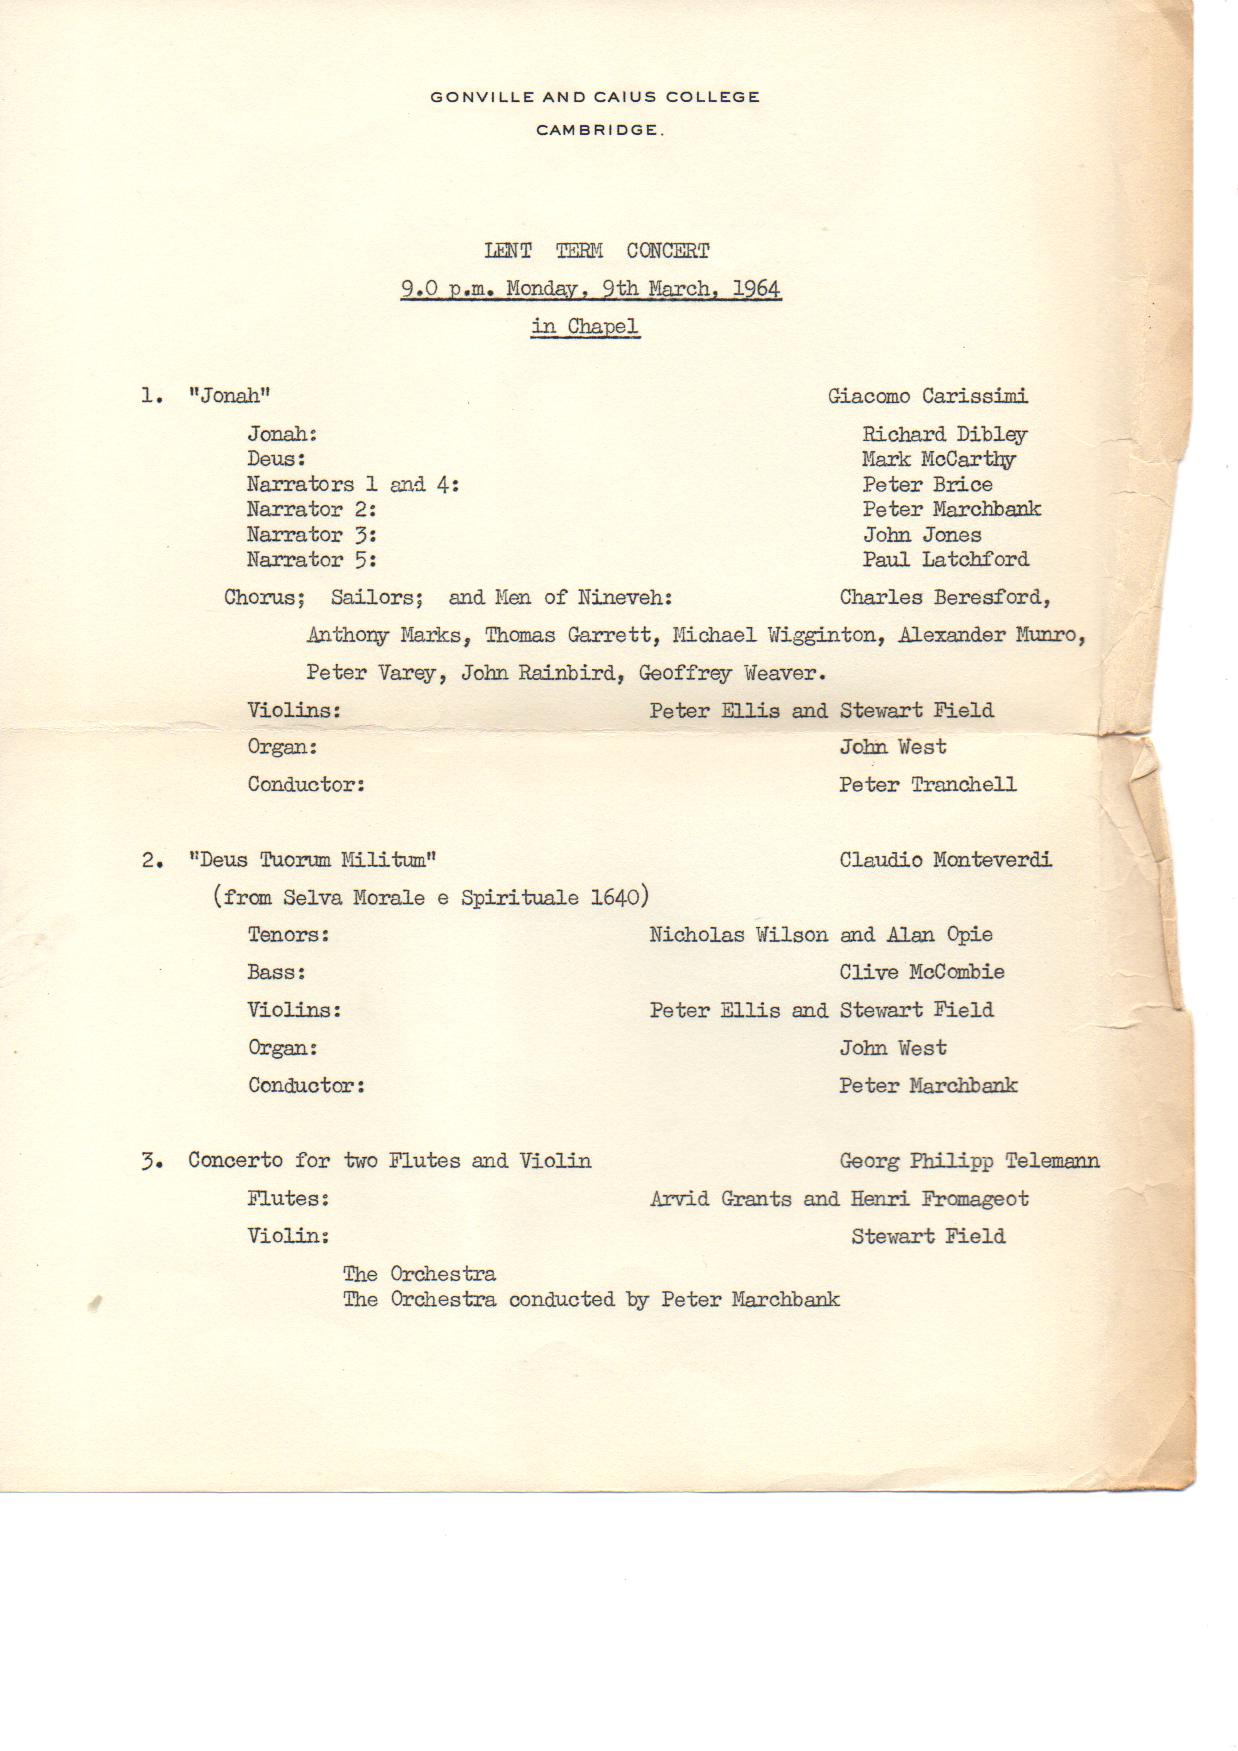 GONVILLE AND CAIUS COLLEGE 1964 LENT TERM CONCERT programme